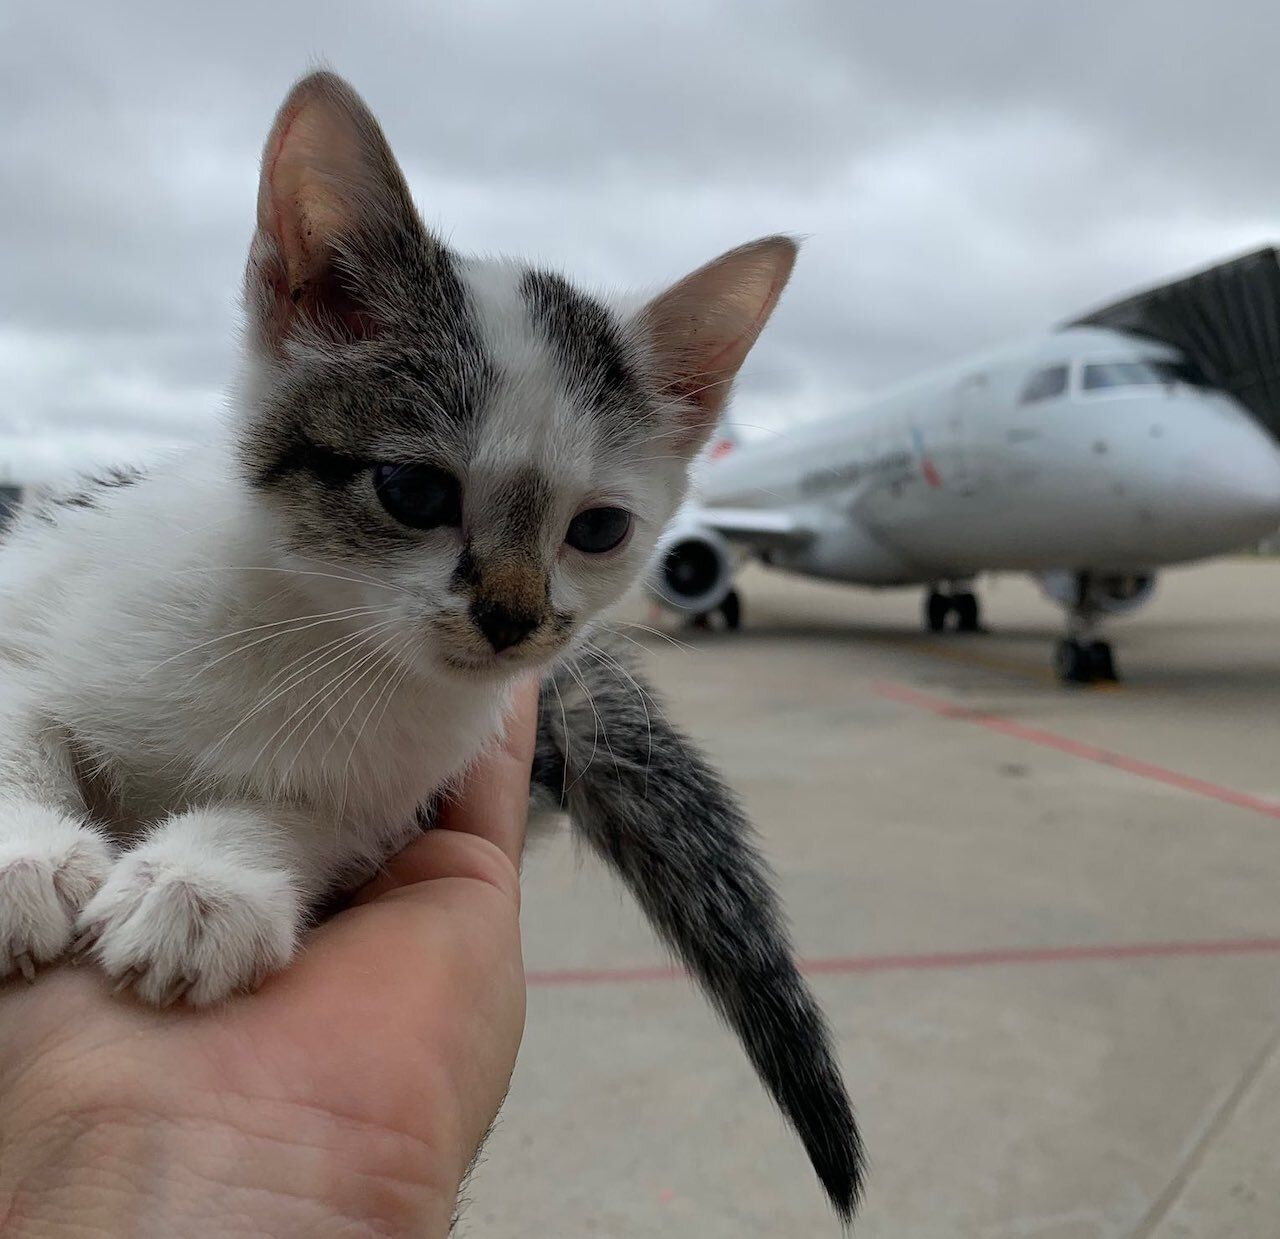 Kitten rescued at Louisville airport